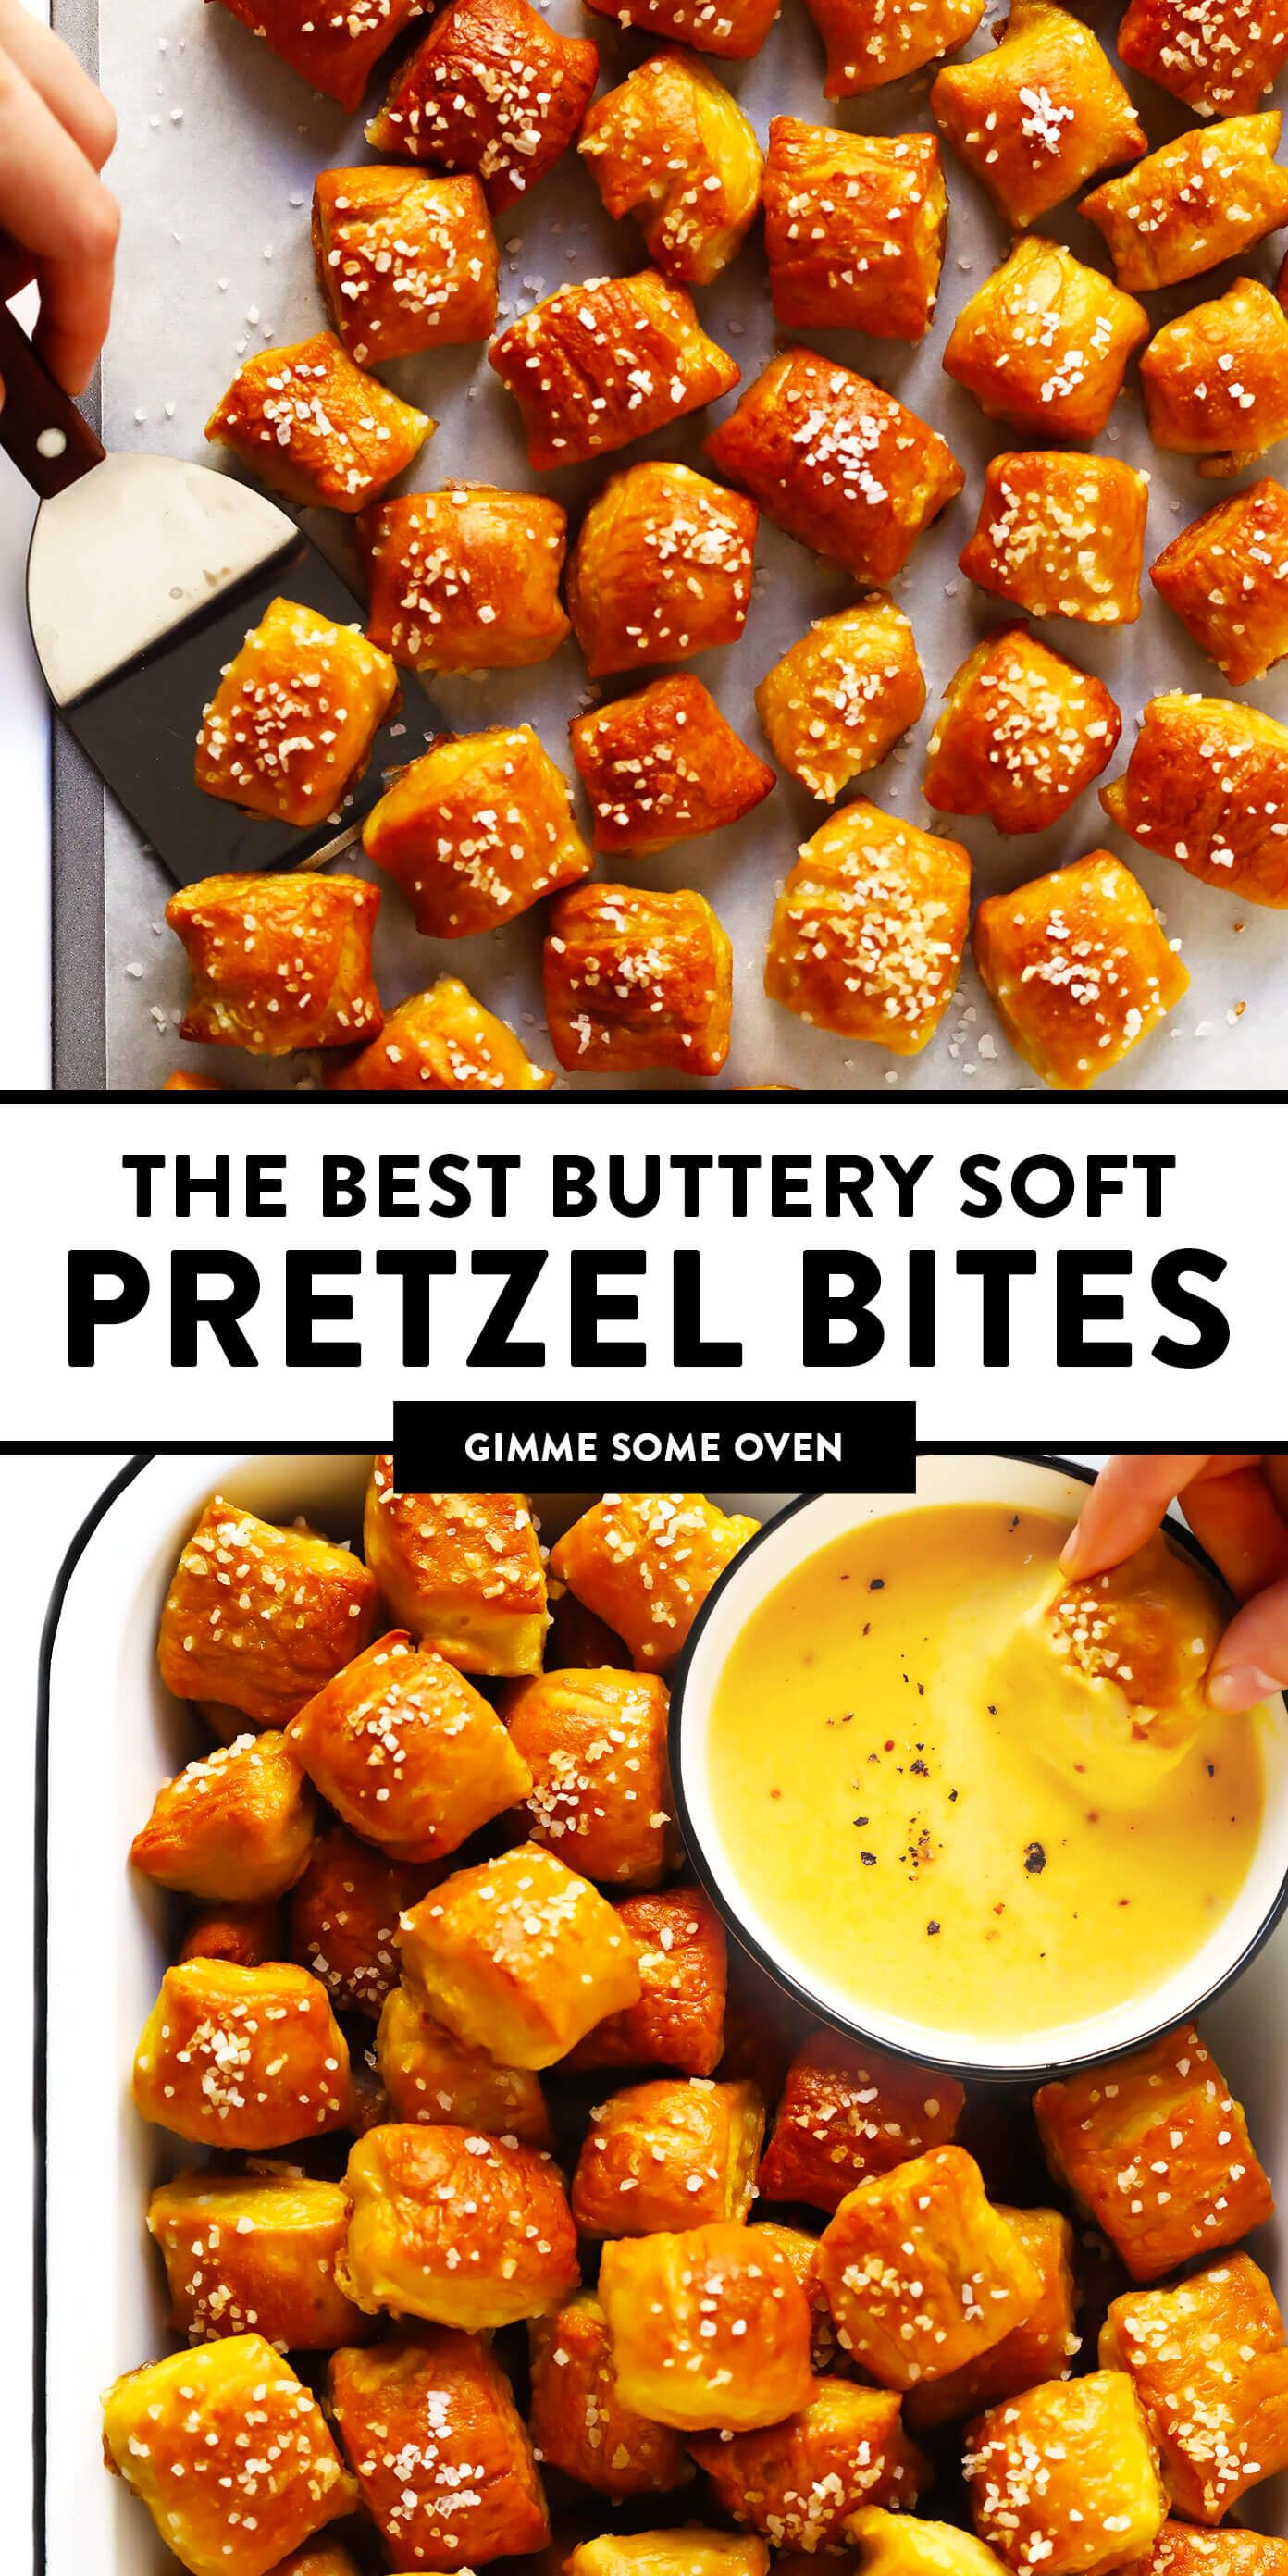 The BEST hot and buttery homemade soft pretzel bites recipe! Easy to make in just 1 hour, and customizable with any of your favorite toppings. | gimmesomeoven.com #pretzels #snack #gameday #appetizer #bread #vegetarian #vegan #homemade